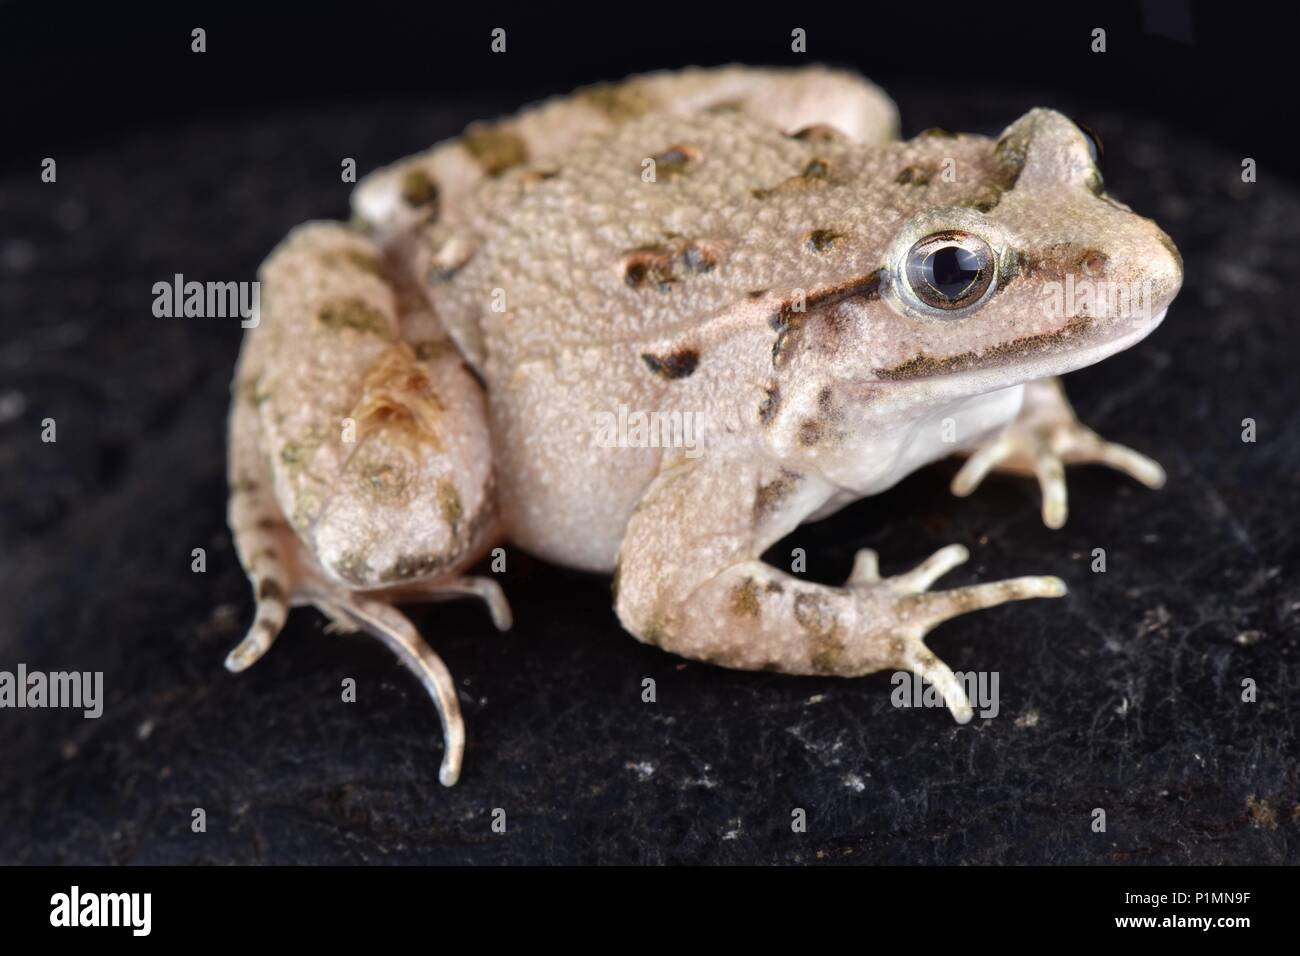 The Moroccan painted frog (Discoglossus scovazzi) is found in Morocco as well as in the Spanish North African enclaves Ceuta and Melilla. - Stock Image